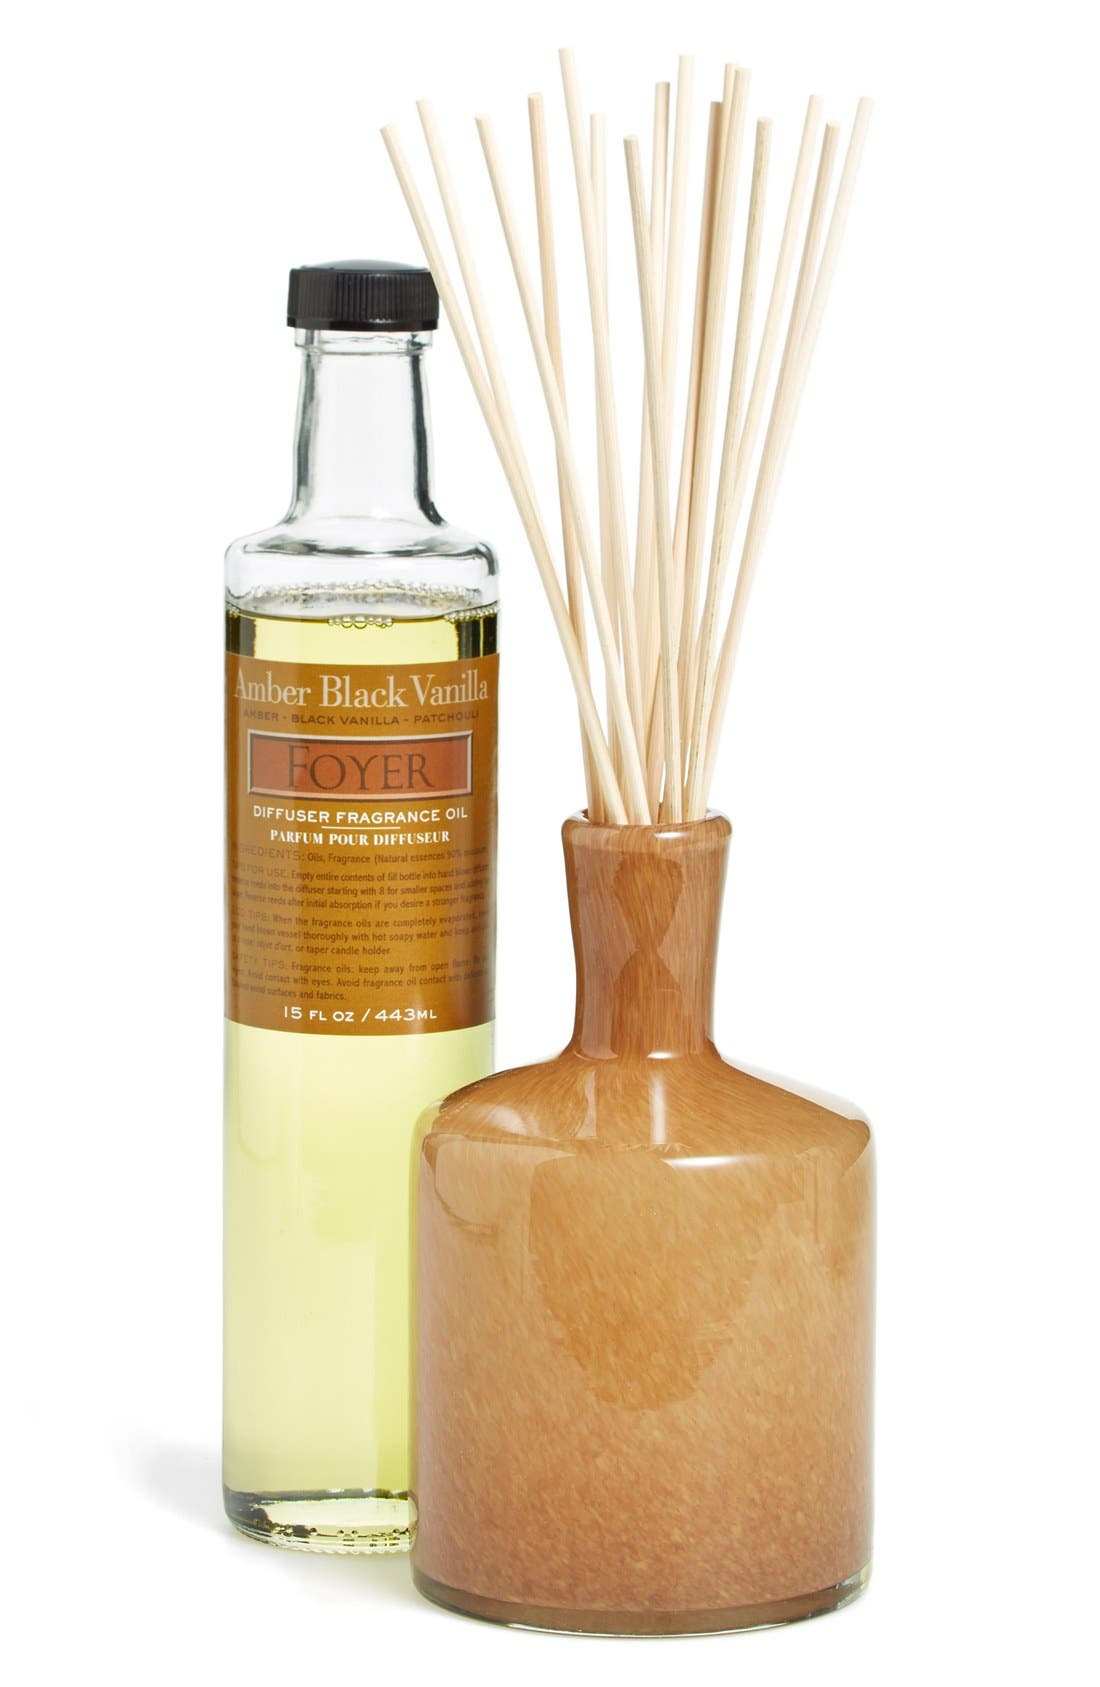 'Amber Black Vanilla - Foyer' Fragrance Diffuser,                             Main thumbnail 1, color,                             No Color